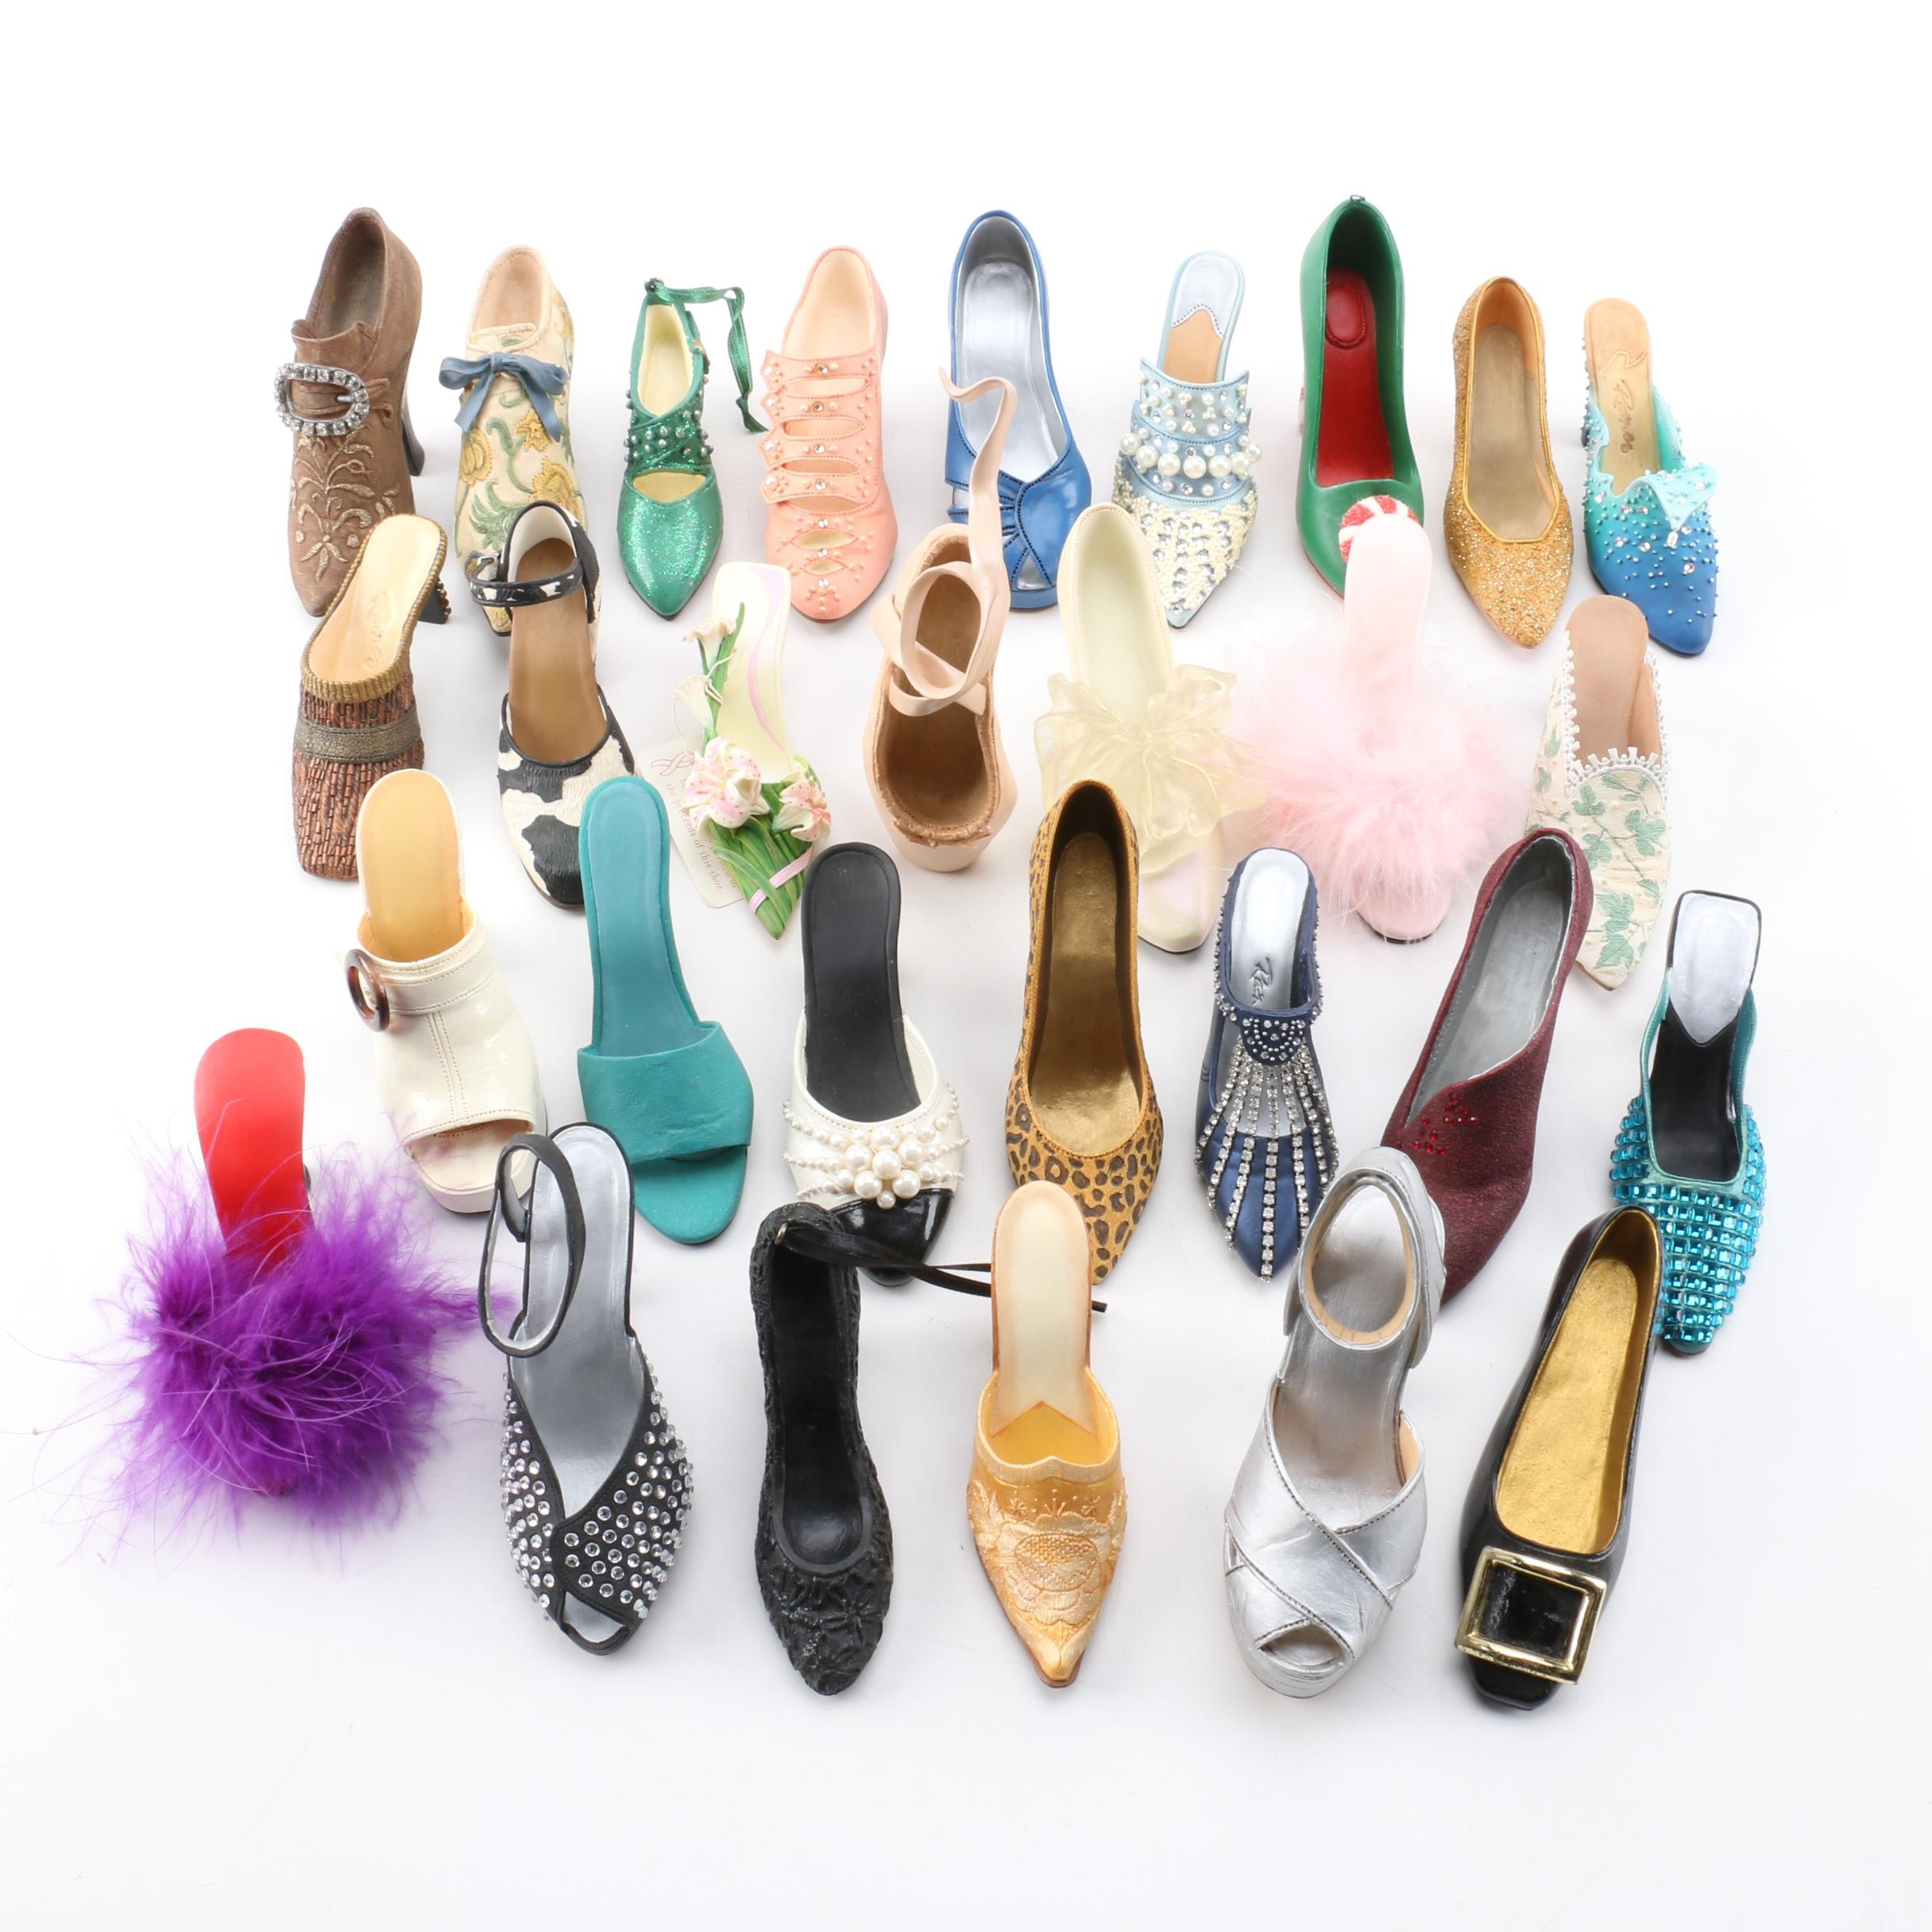 Miniature High Heeled Shoe Collection